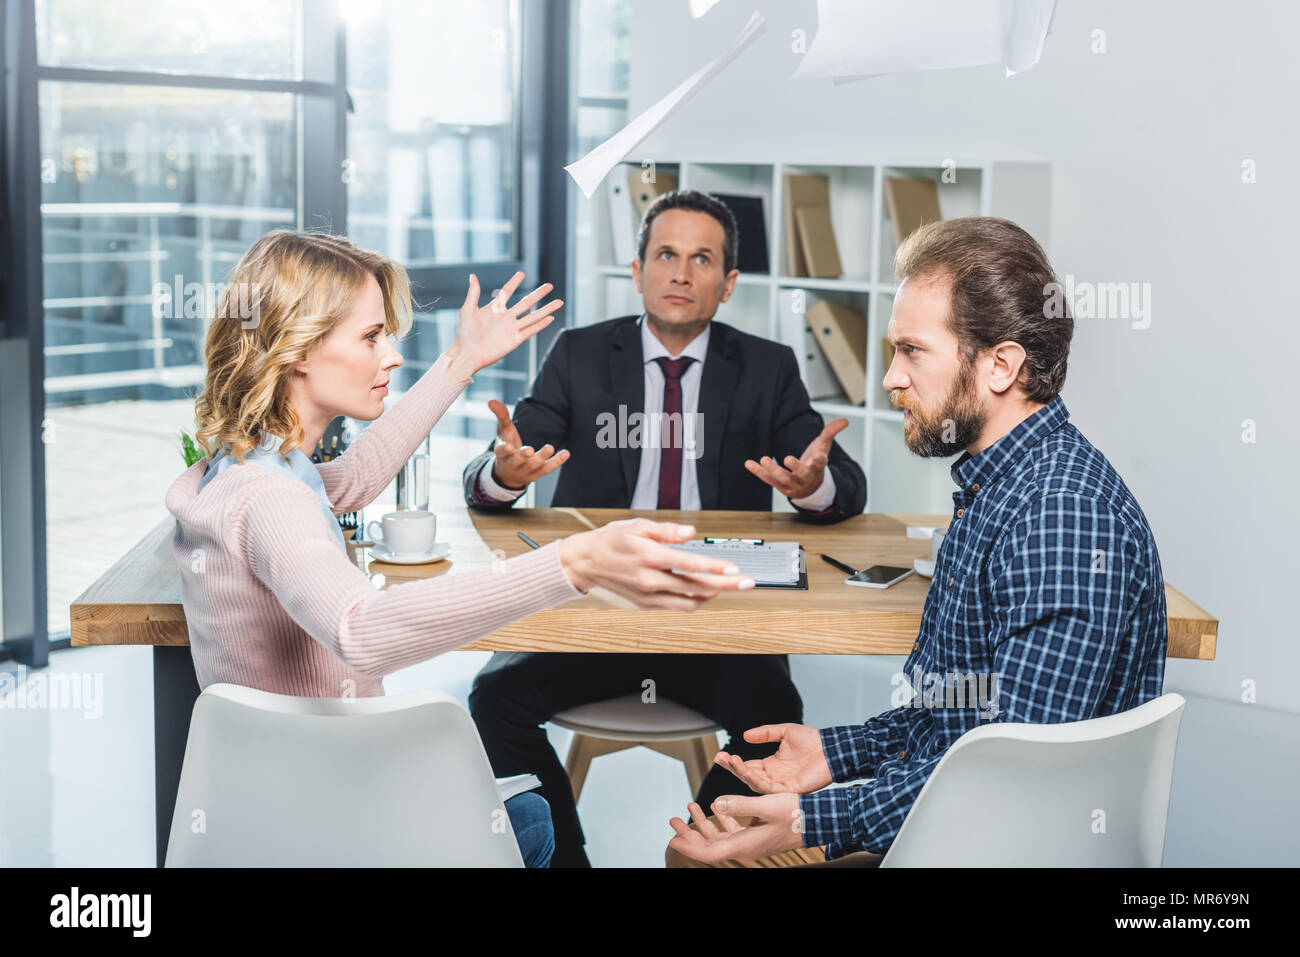 side view of couple having argument during meeting with lawyer in office - Stock Image